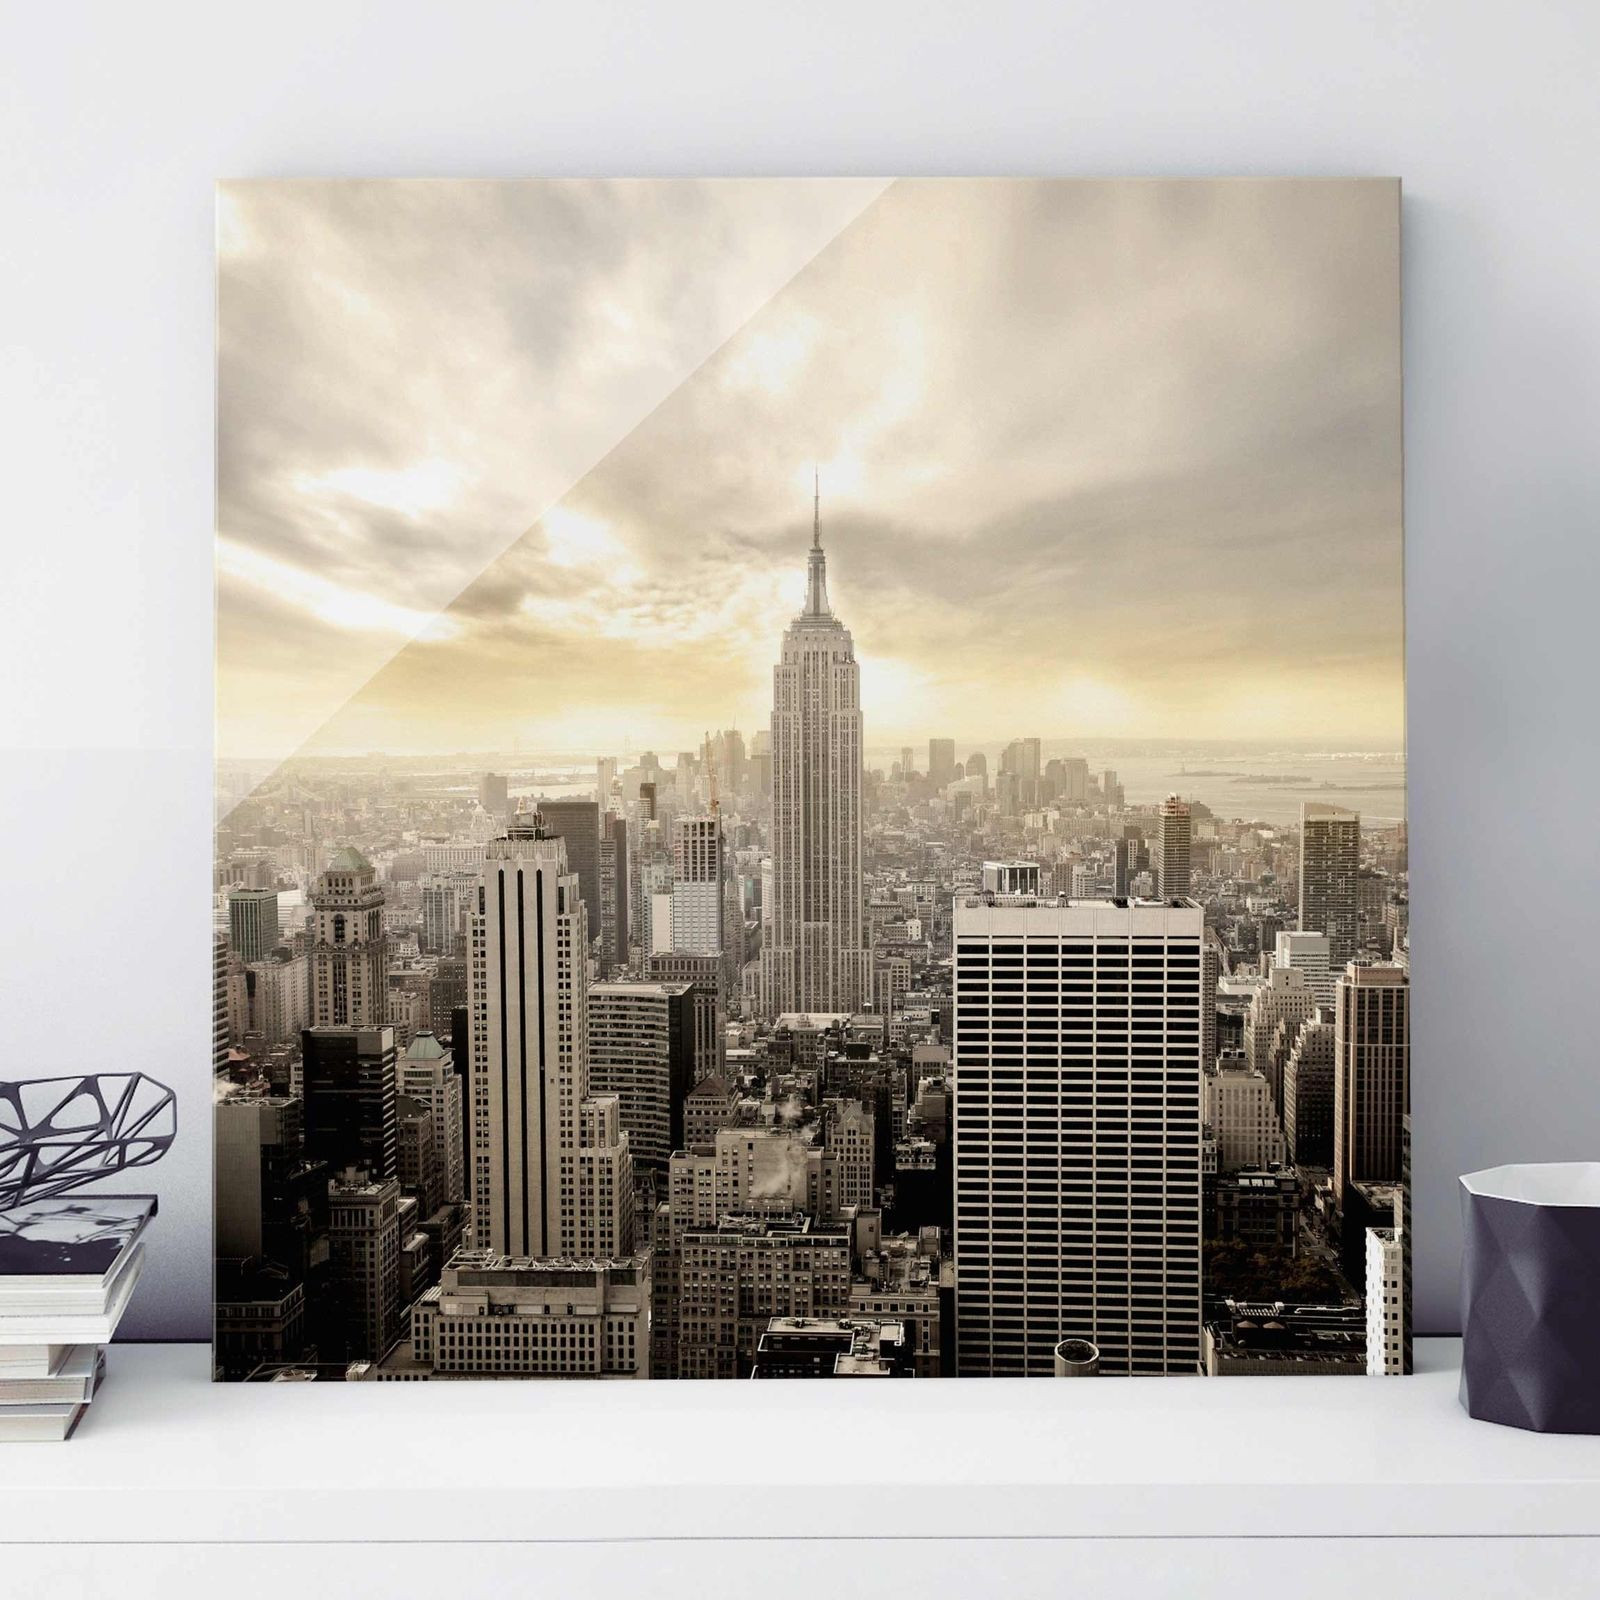 Glasbild Manhattan Dawn Quadrat 1 1 Wandbild Echtglas Farbecht Motiv Design